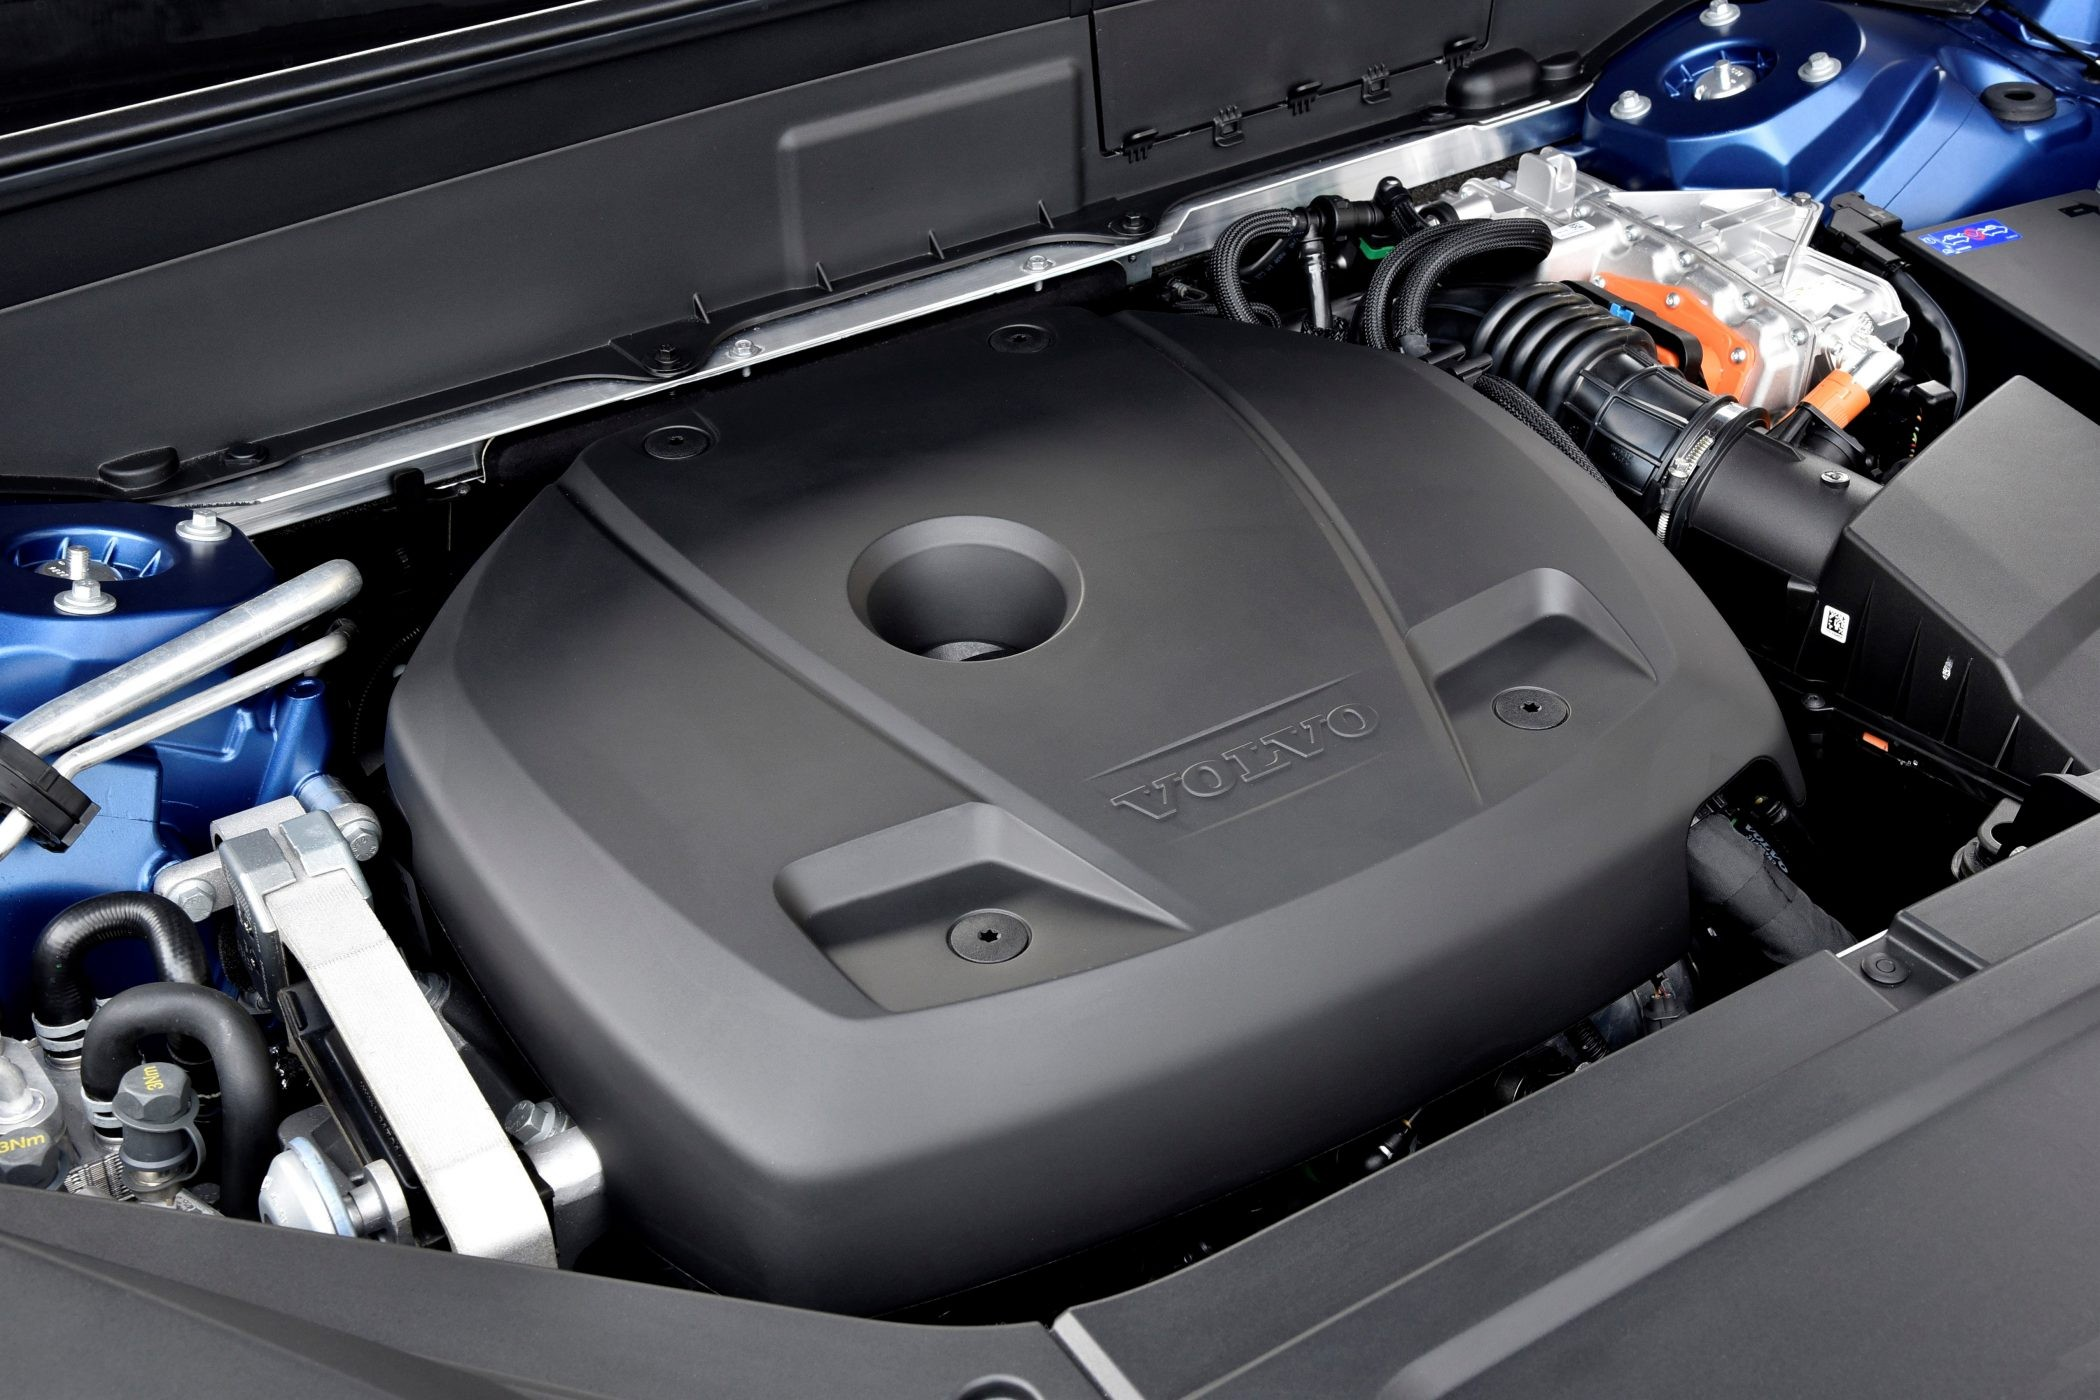 autovisie.nl Volvo XC90 T8 Twin Engine with Polestar Performance Optimisation